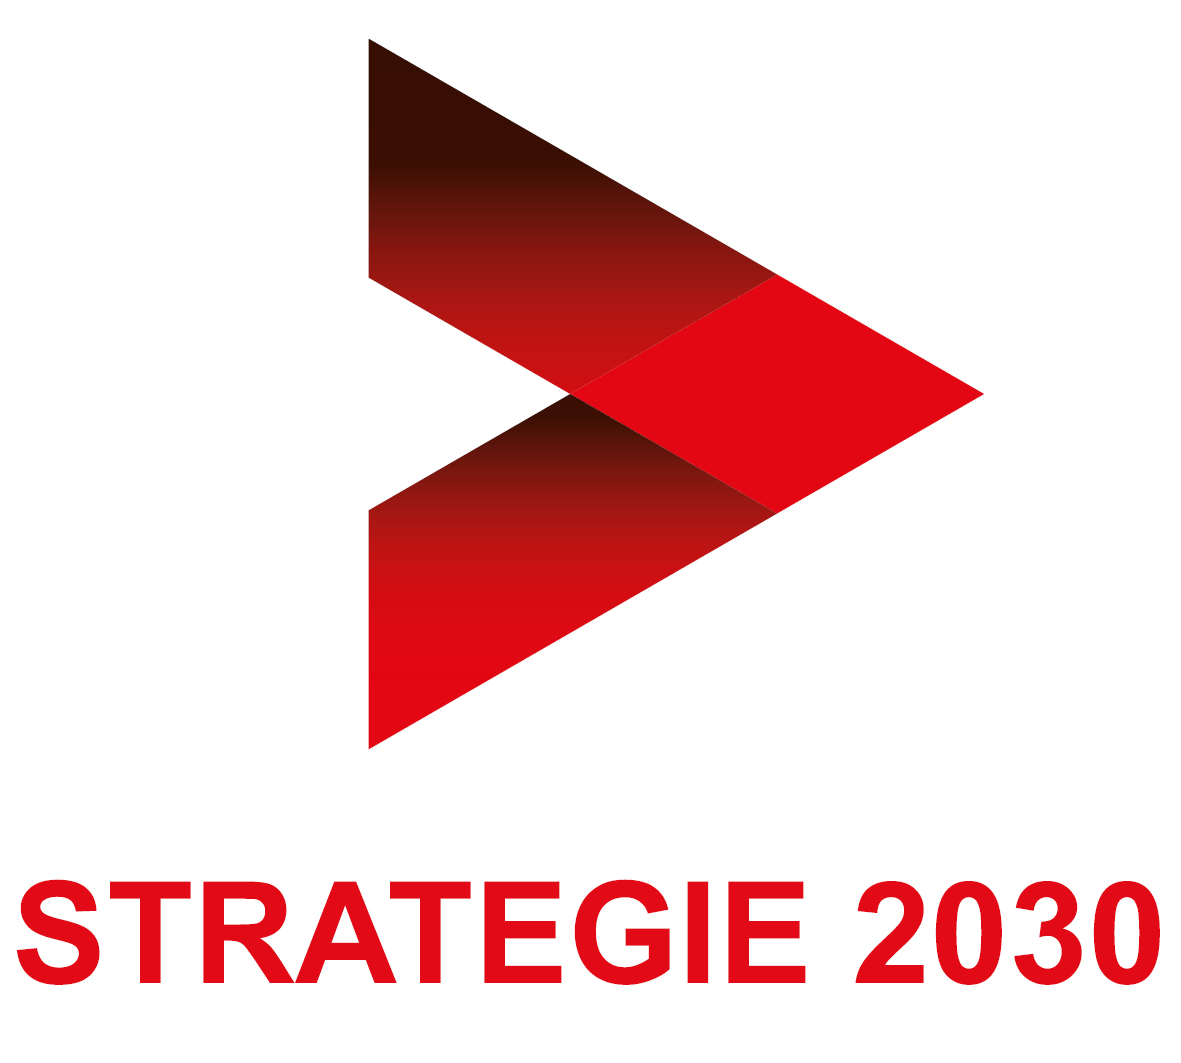 DRK Strategie 2030 Logo